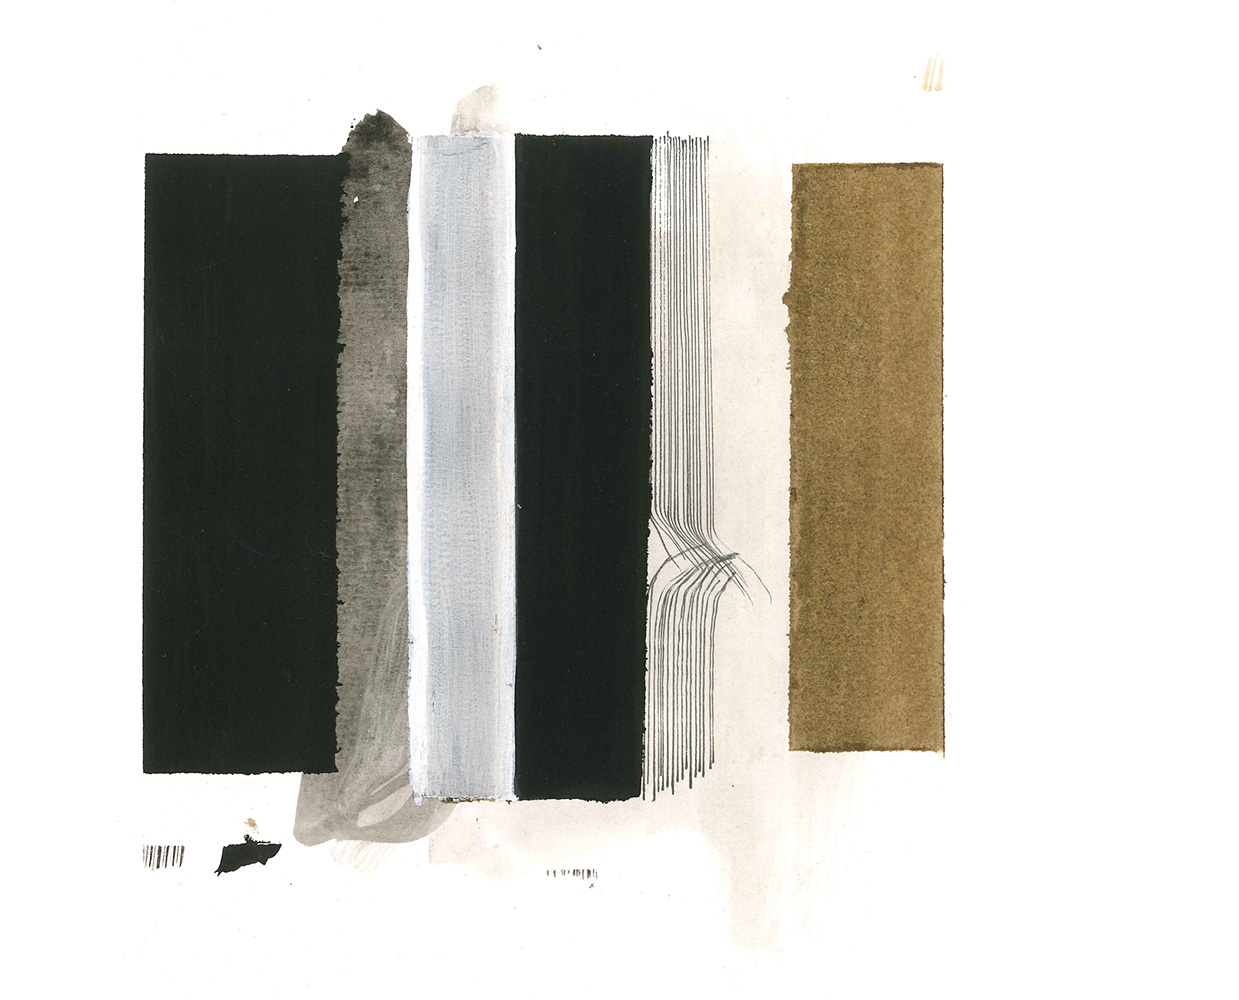 Ines Hochgerner,  Untitled,  2014, mixed media on paper, 21x15cm